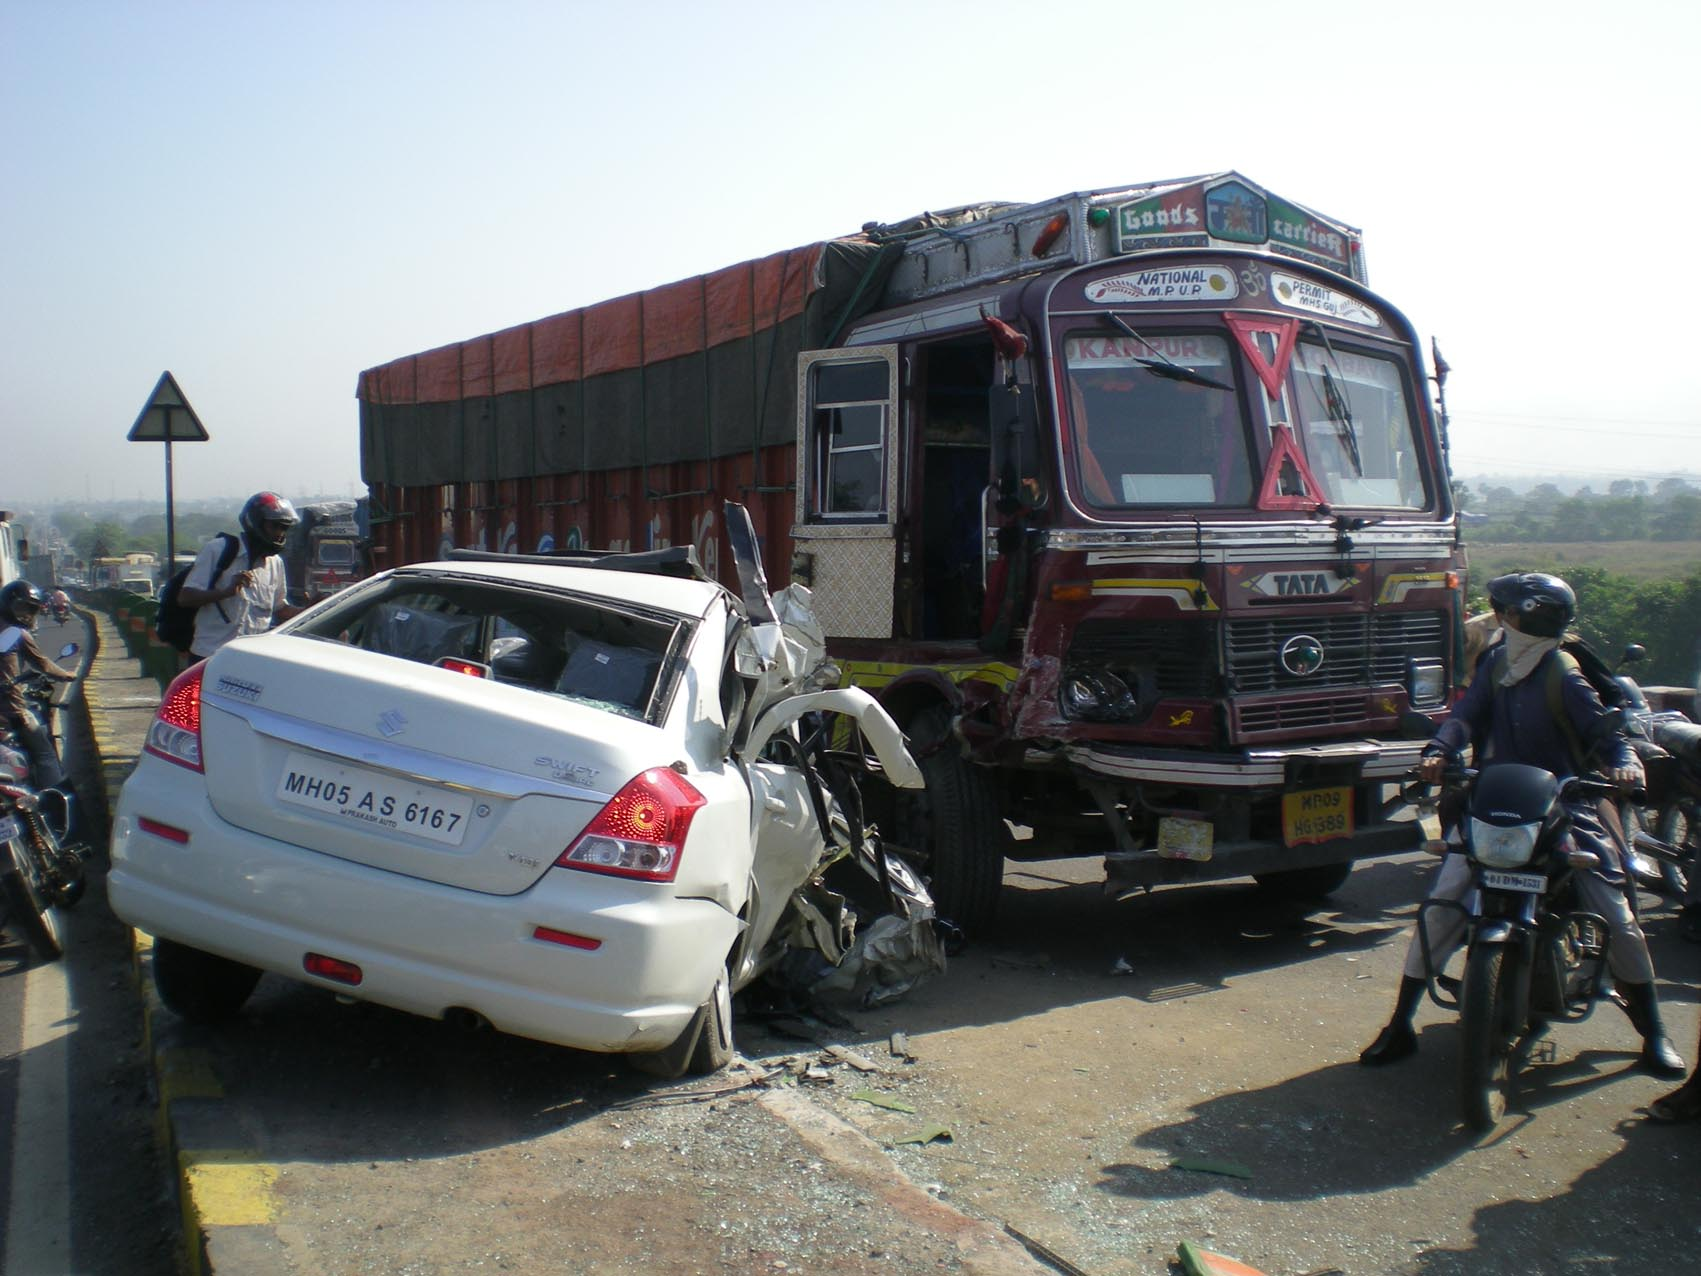 road-accident - legal news / law news & articles - free legal